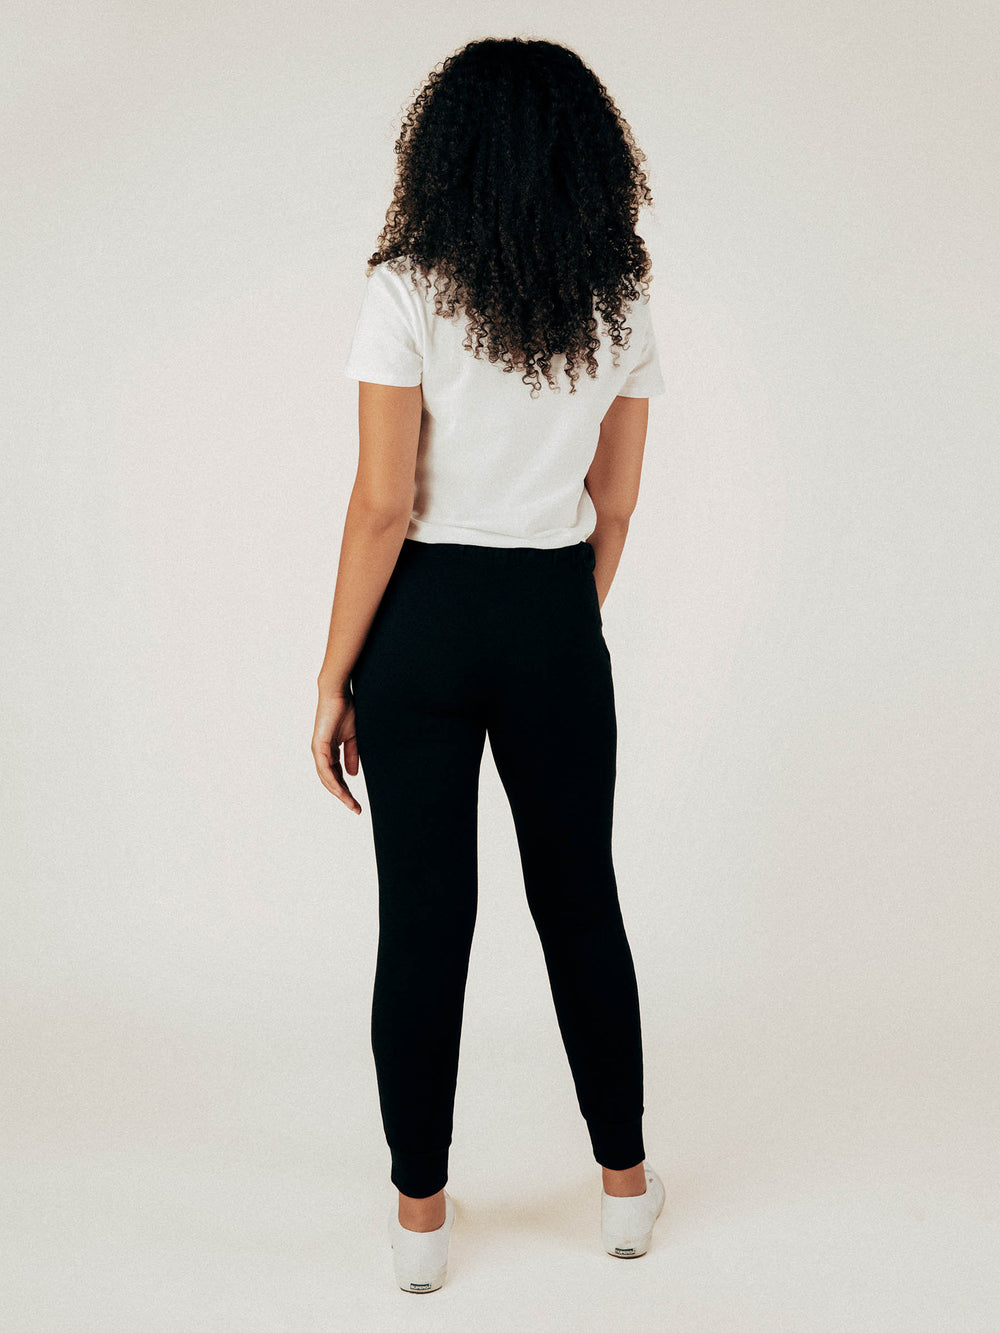 Black French Terry Sweatpant - Graceful District